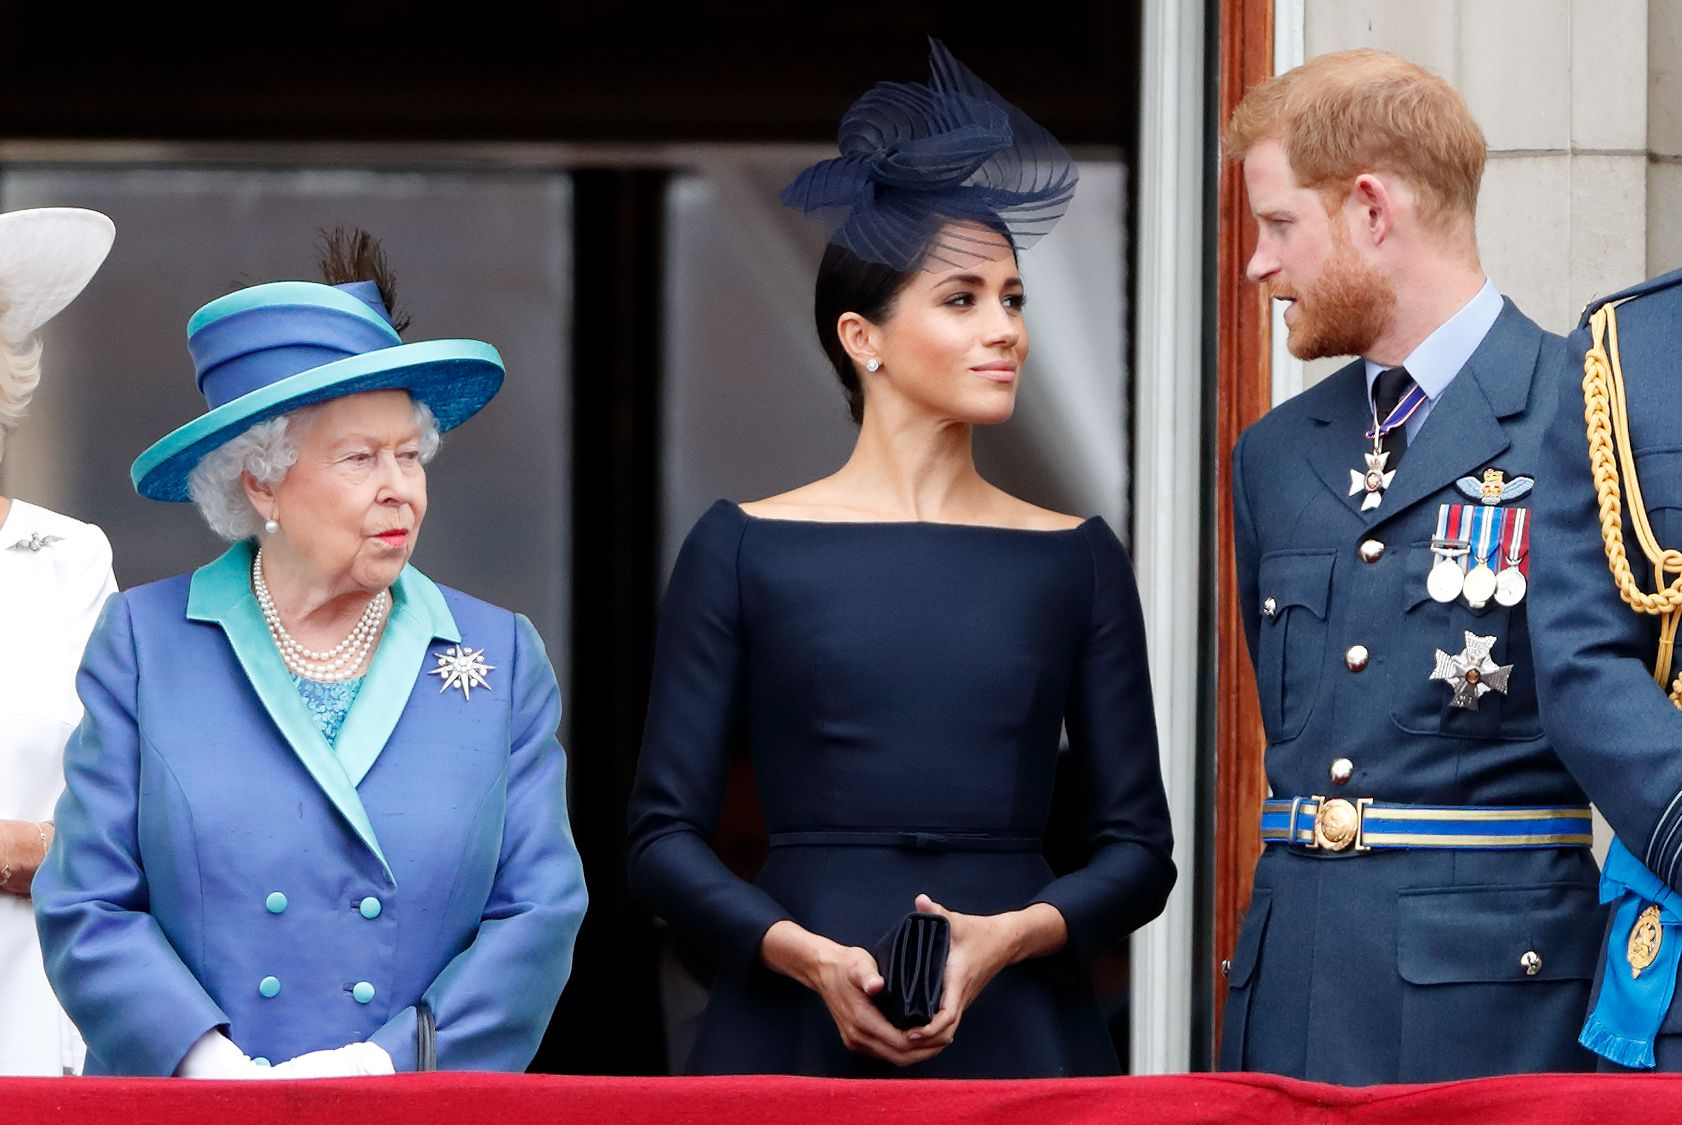 """Meghan Markle Reportedly """"Embarrassed"""" Prince Harry by Revealing Her Pregnancy at Princess Eugenie's Wedding"""